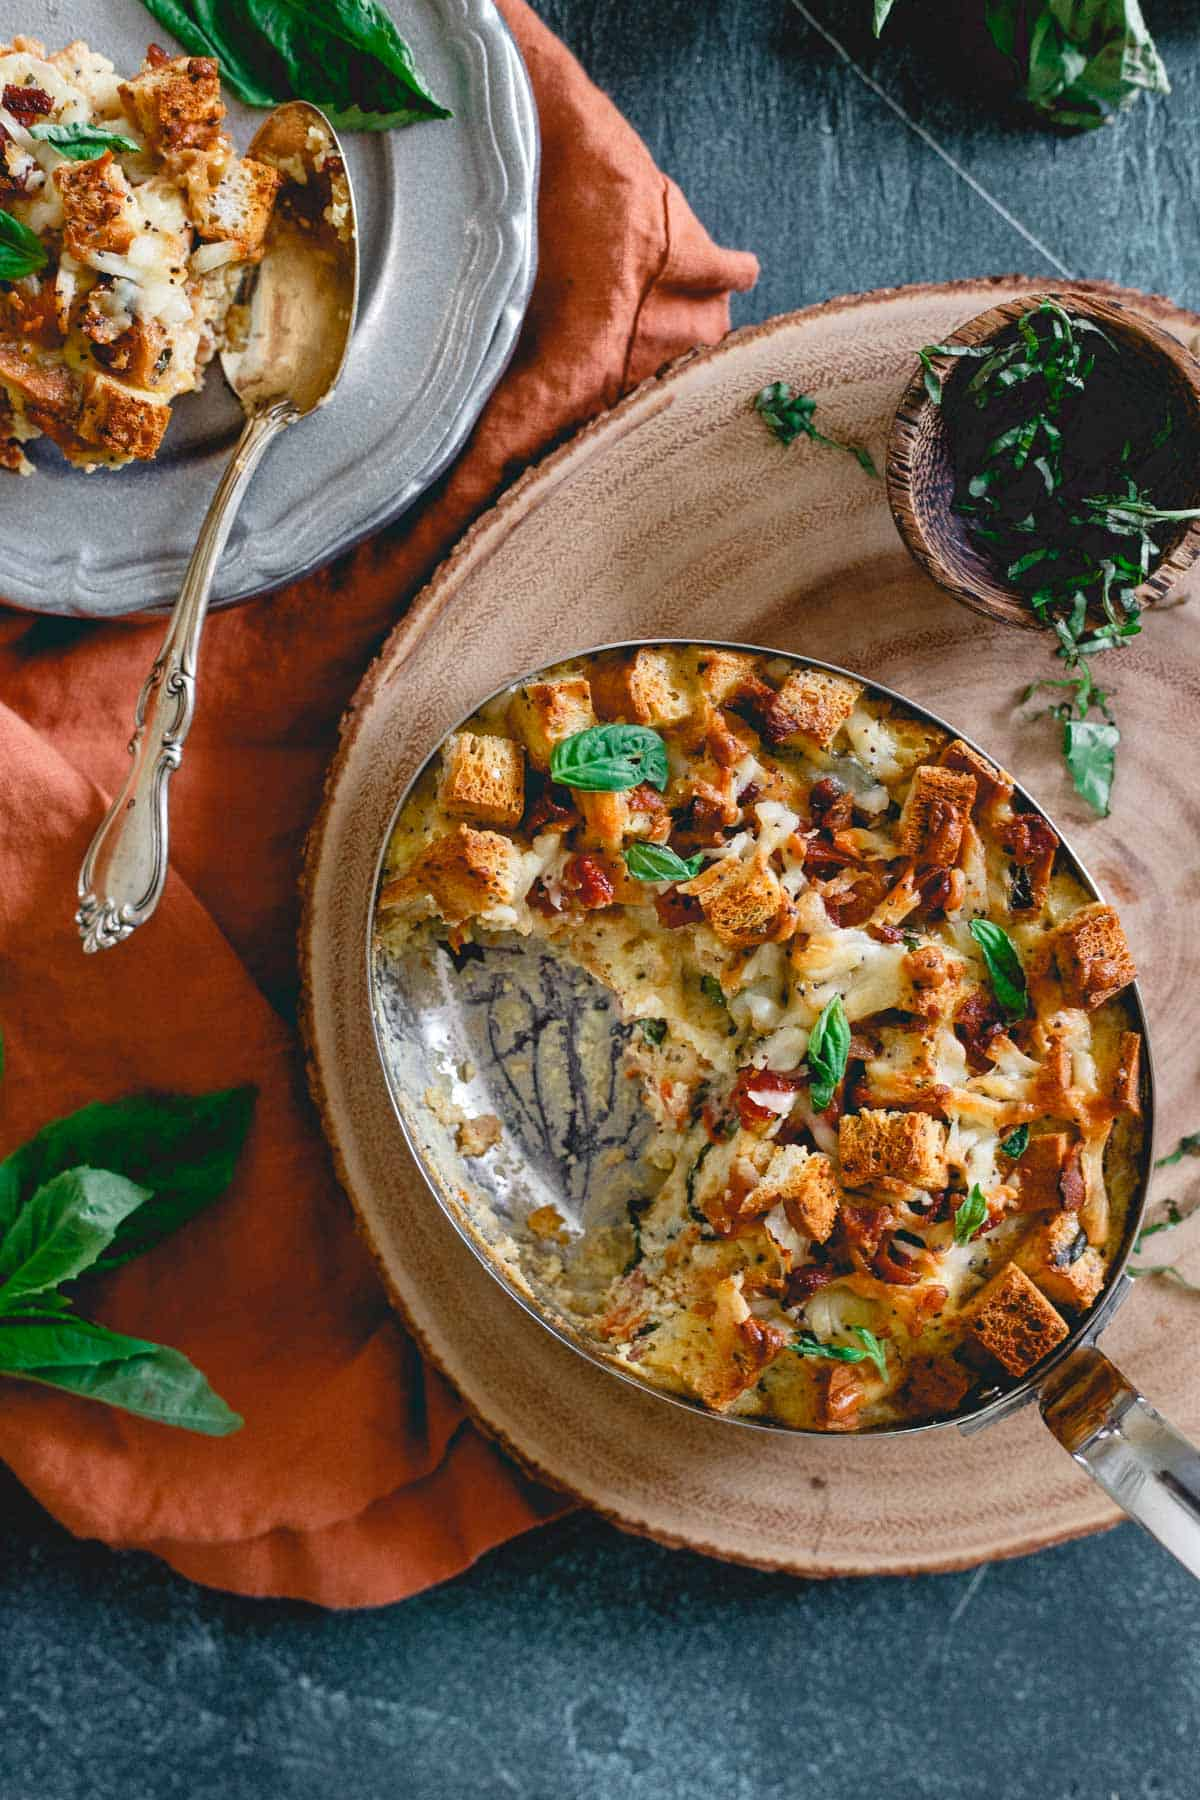 Everything bagels are used in this breakfast strata combined with bacon, cheese, basil and sun-dried tomatoes for a delicious gluten-free brunch.